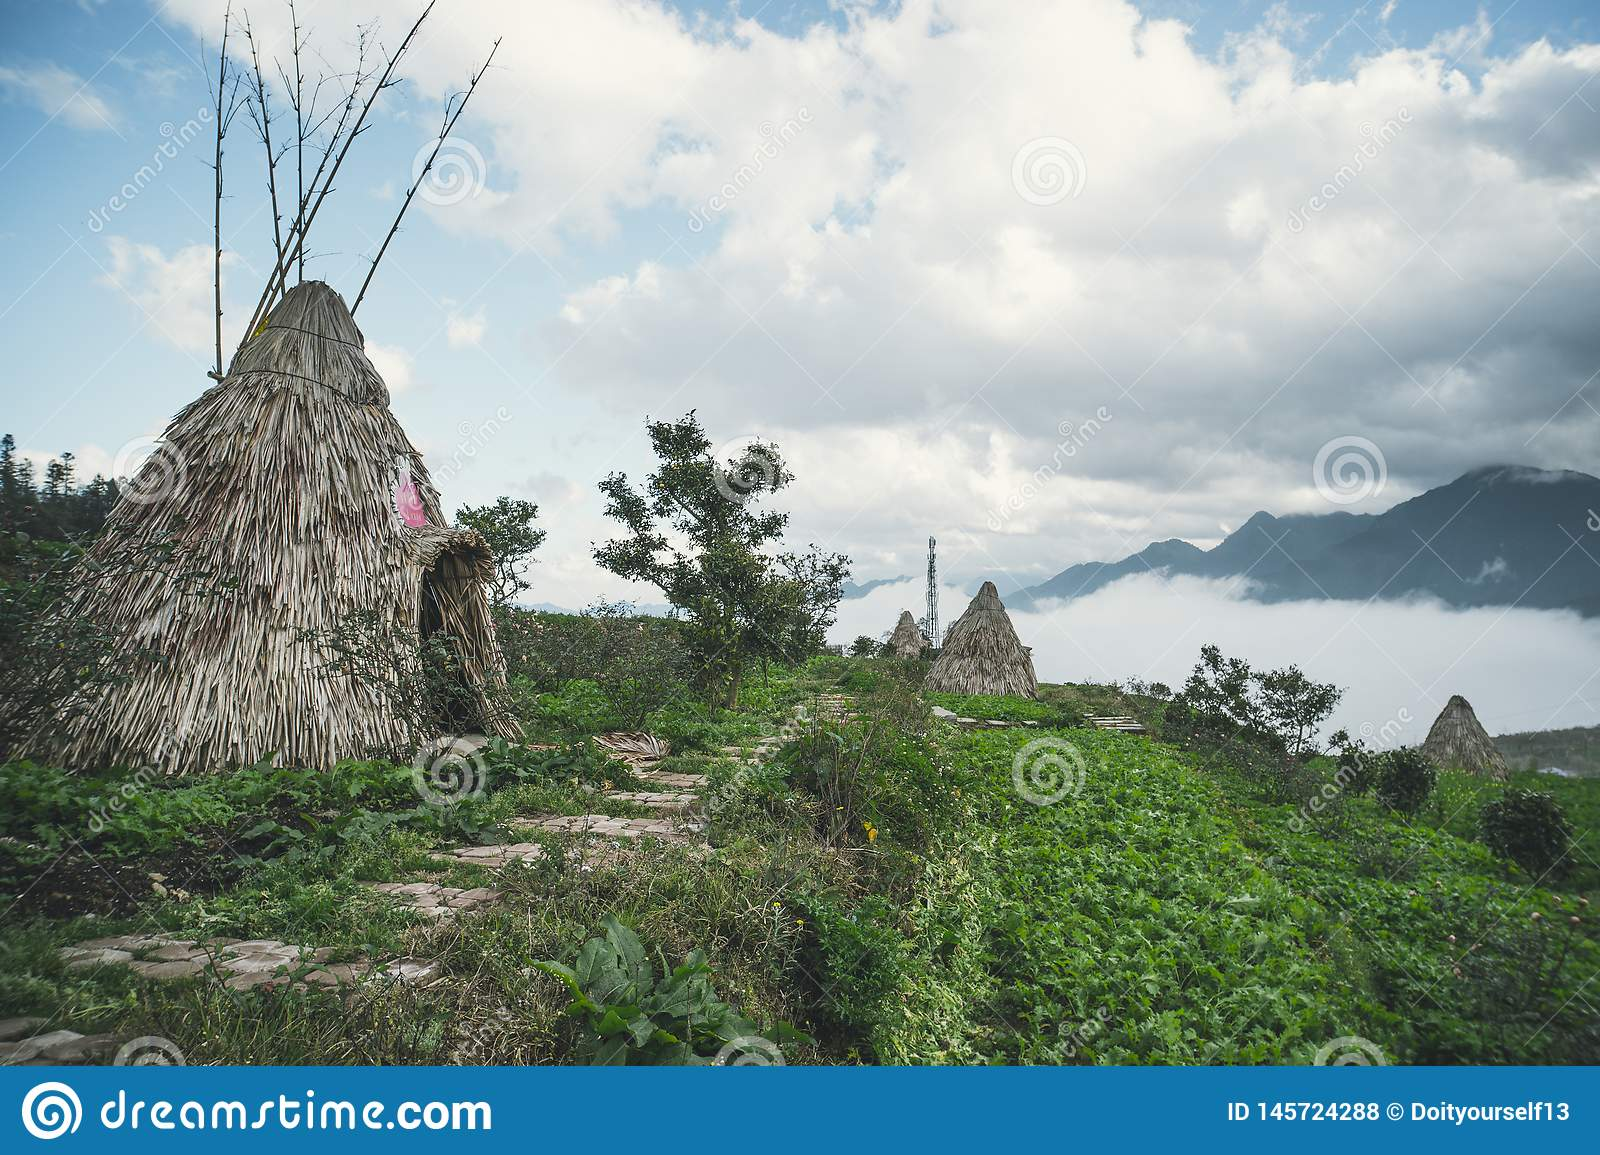 Traditional home of small peoples of North Vietnam, living in the mountains near the city of Sapa. Historical reconstruction.